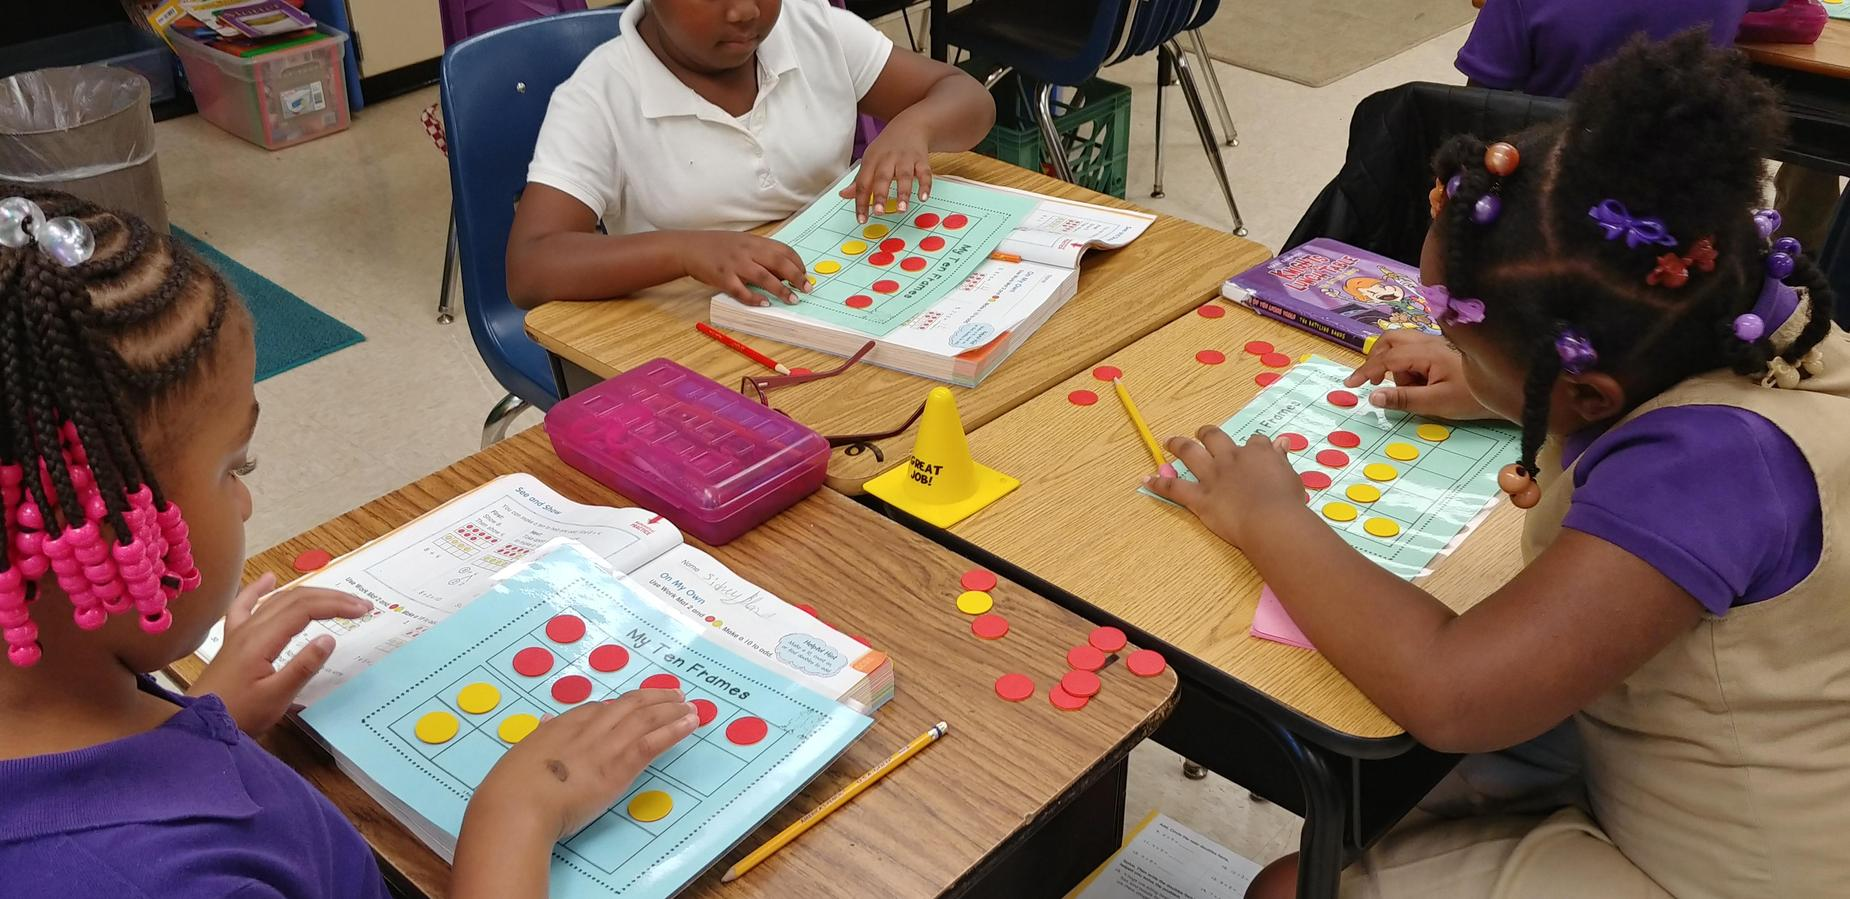 Students using manipulatives to complete math problems.